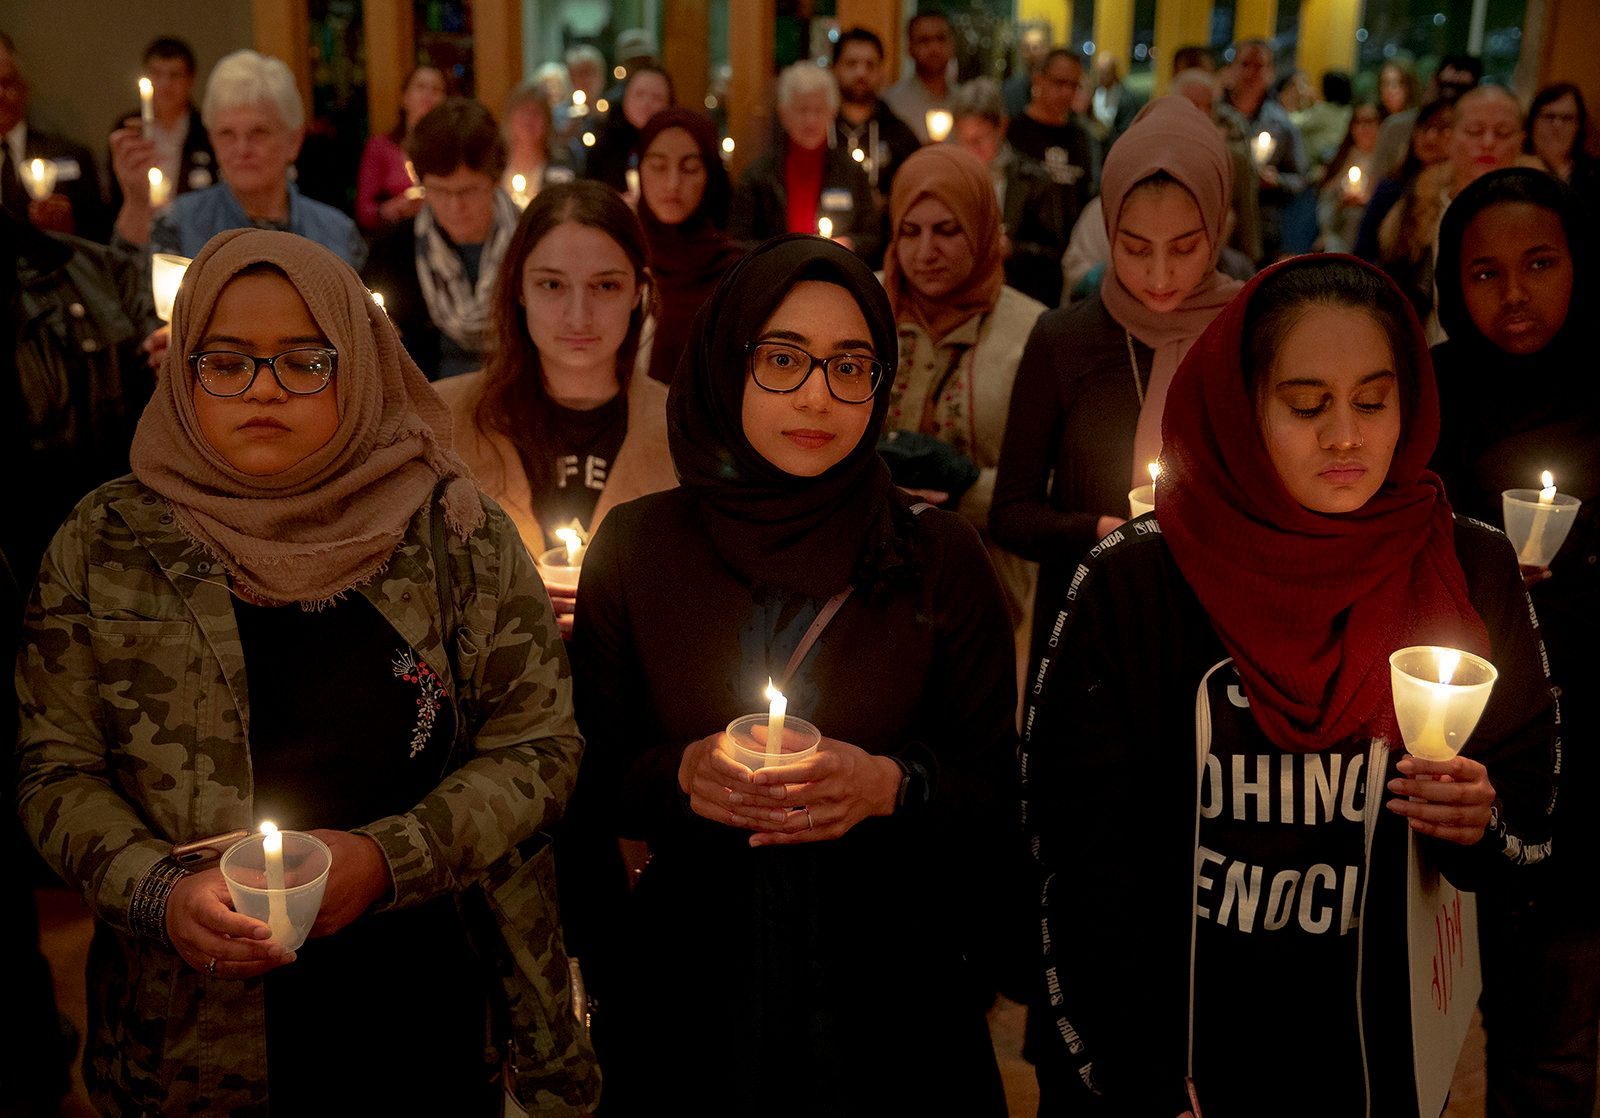 Muslim Activist Gathers Stories Of Interfaith Solidarity After New Zealand